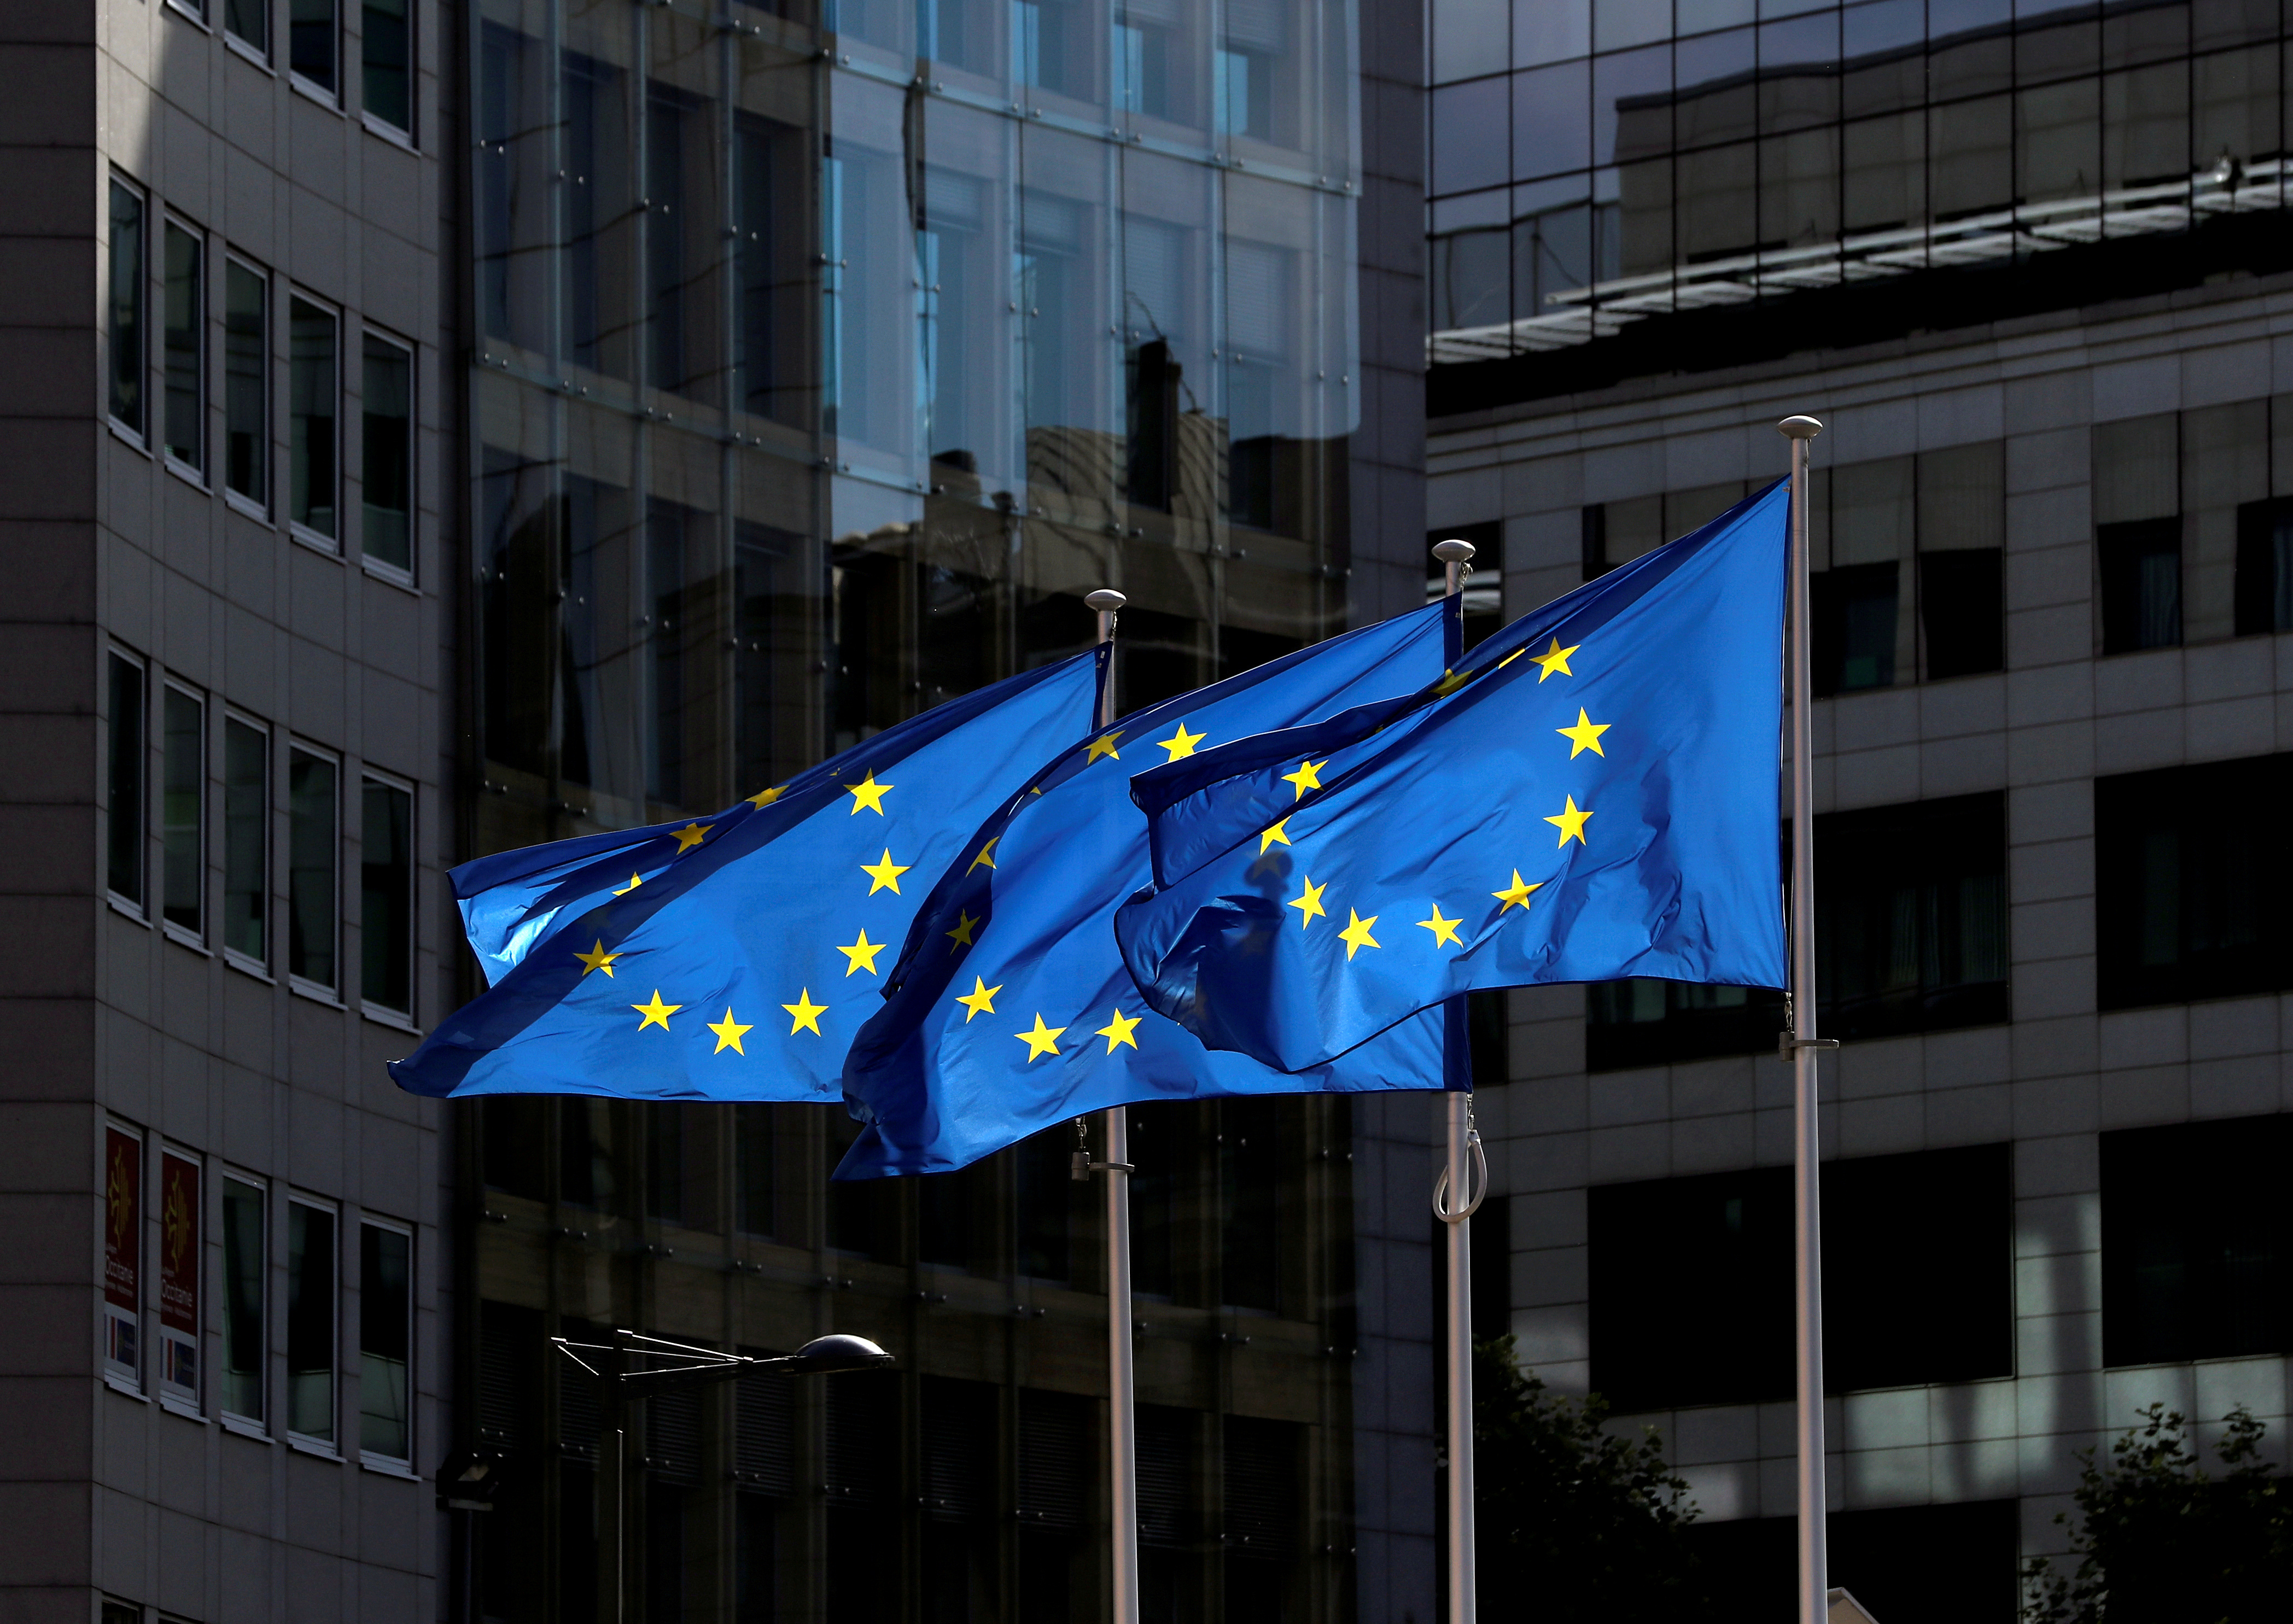 European Union flags flutter outside the European Commission headquarters in Brussels, Belgium August 21, 2020. REUTERS/Yves Herman//File Photo